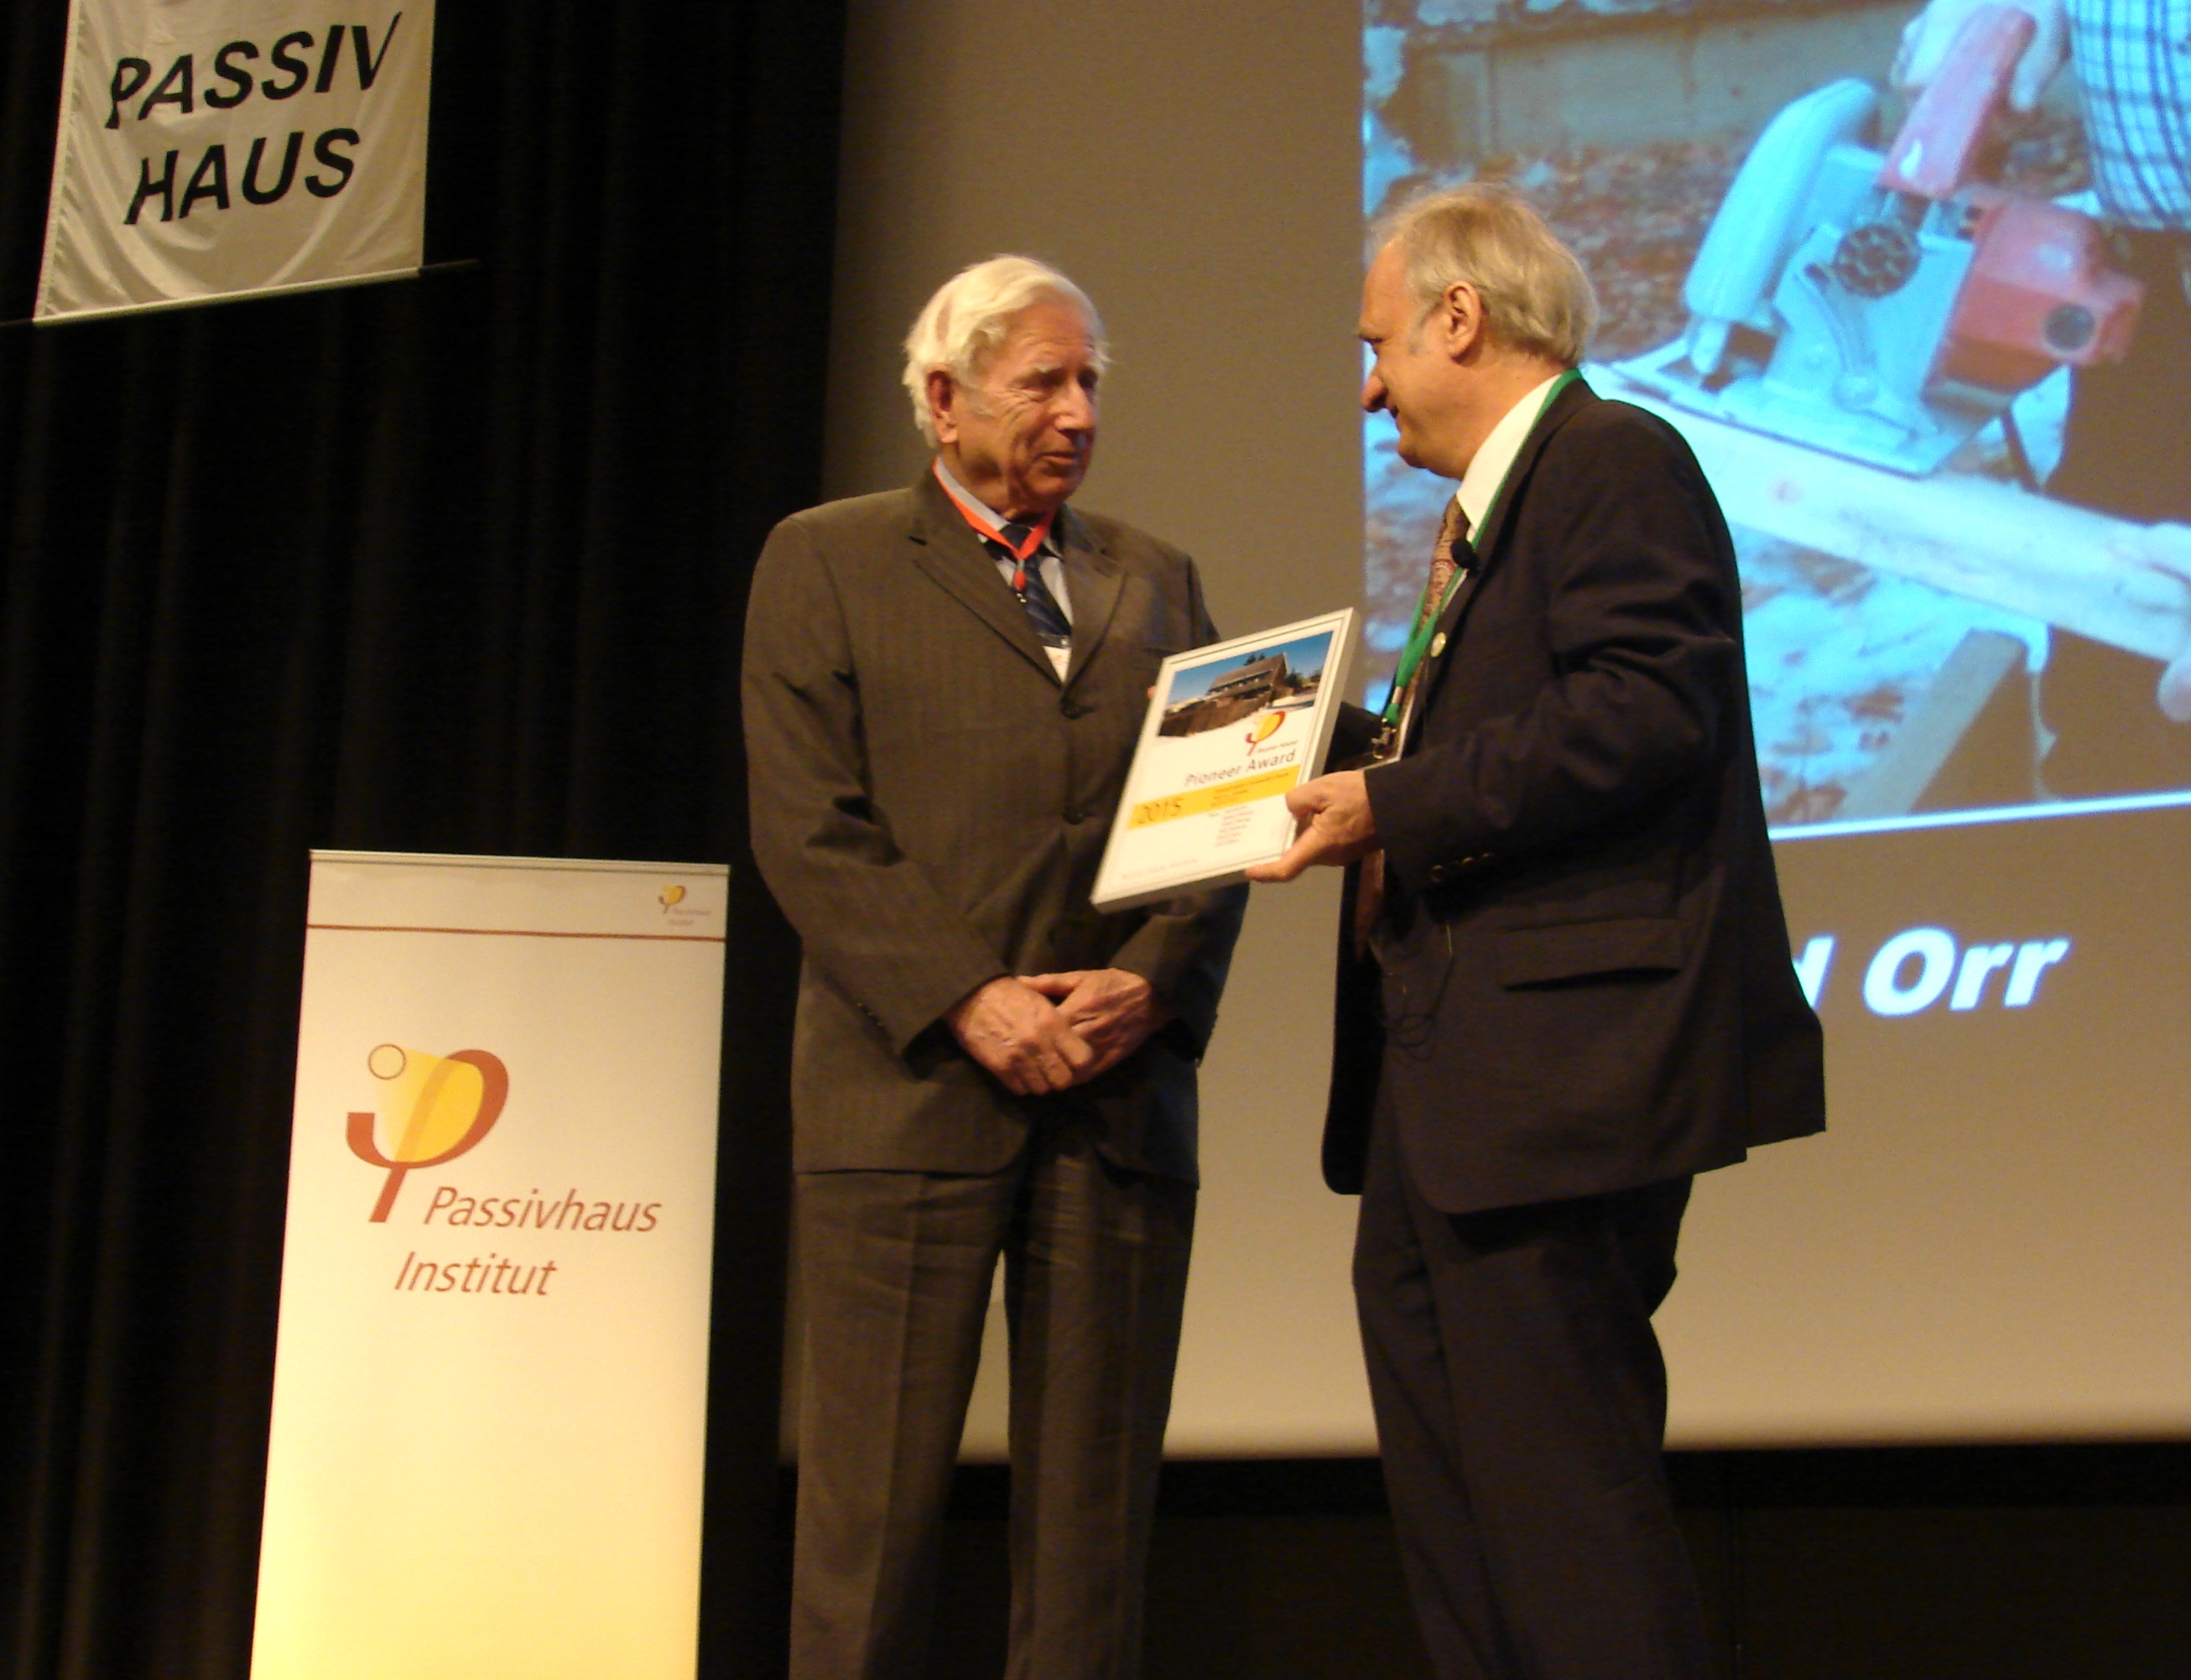 Dr. Feist presents award to Harold Orr